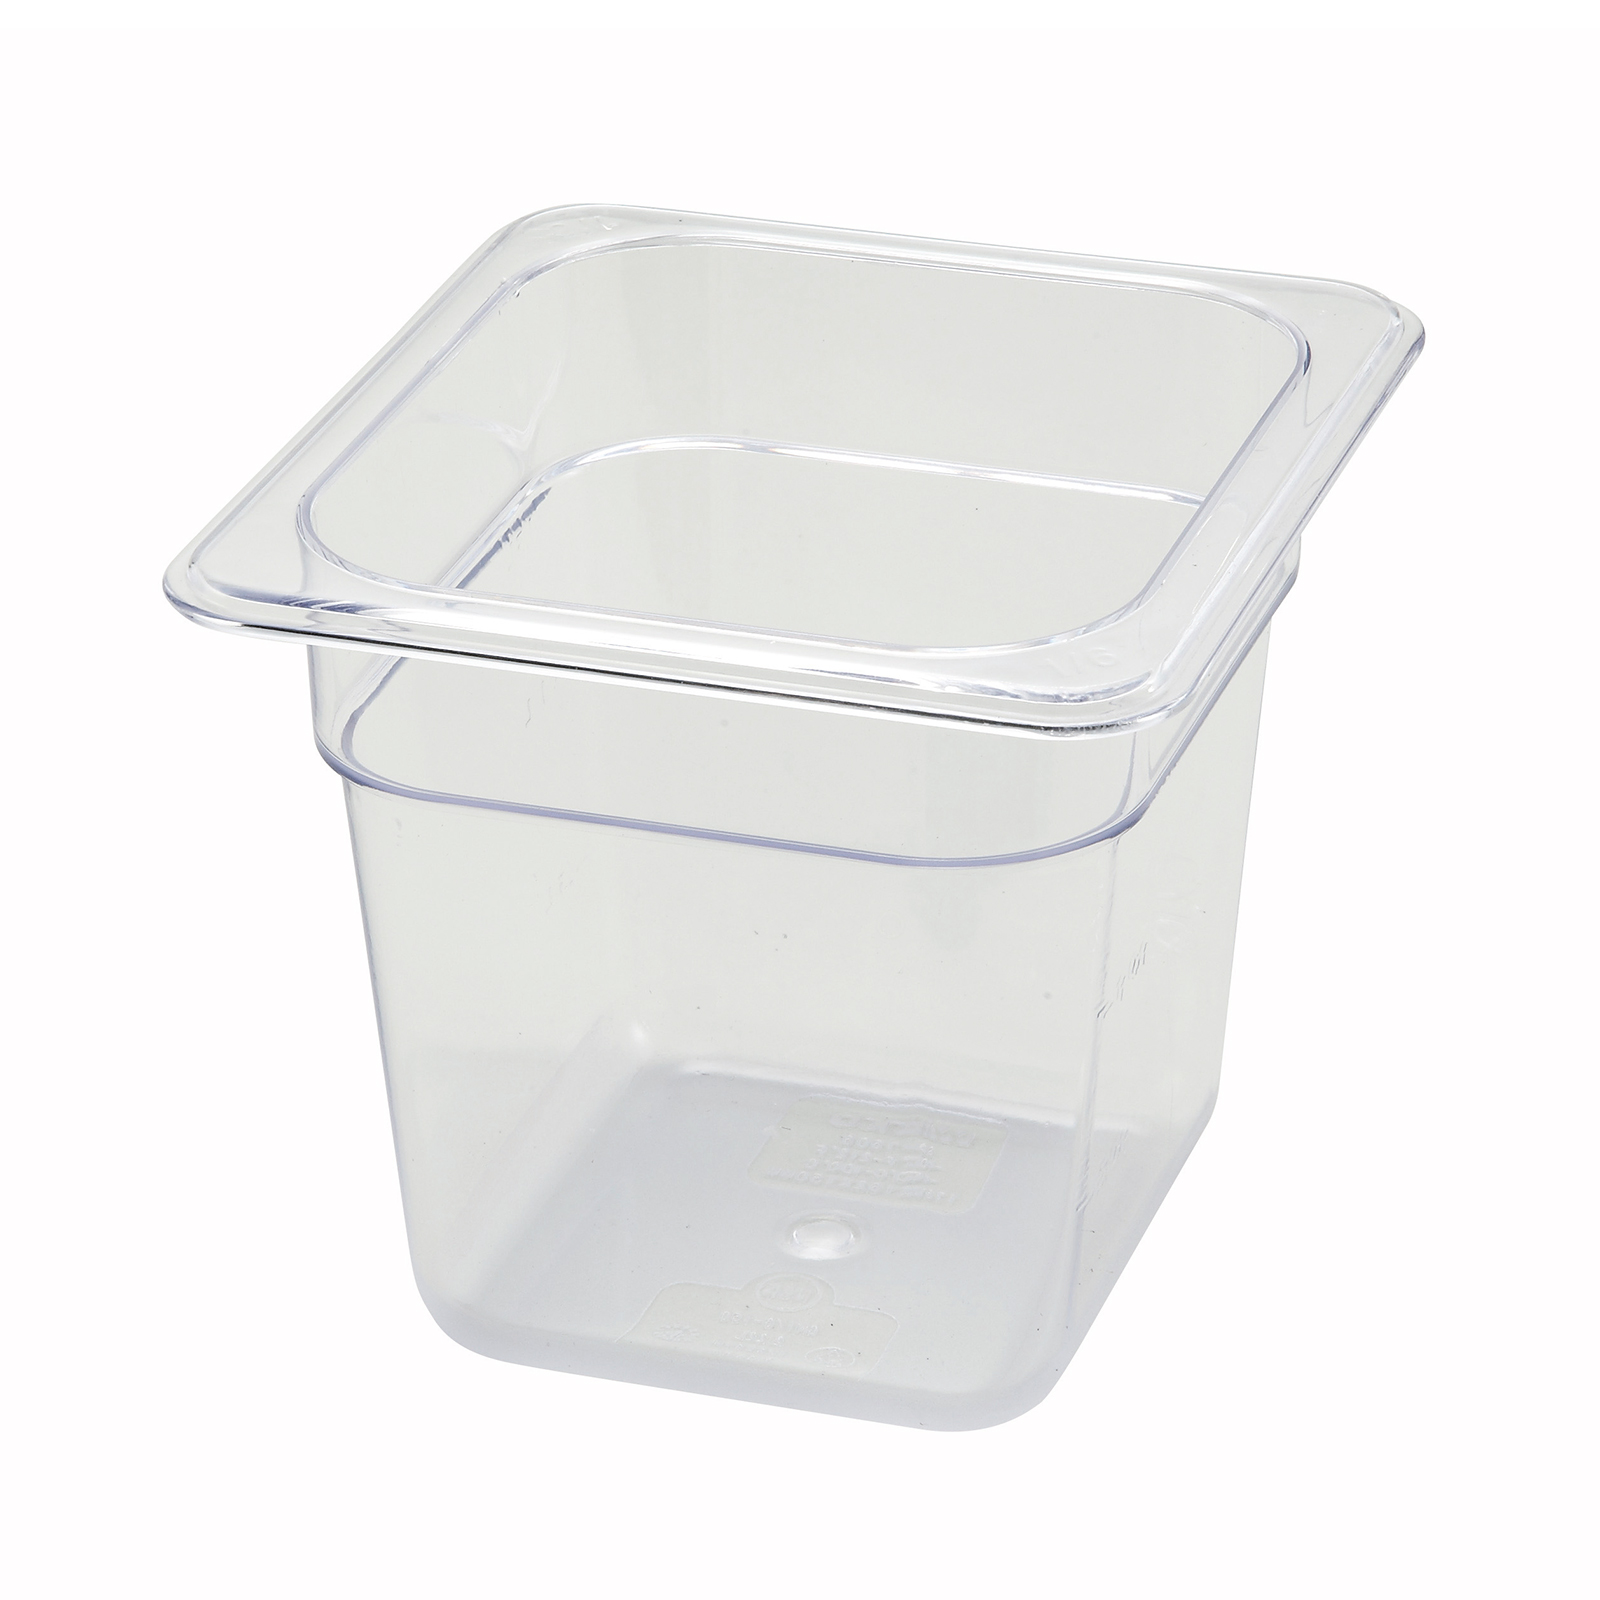 Winco SP7606 food pan, plastic